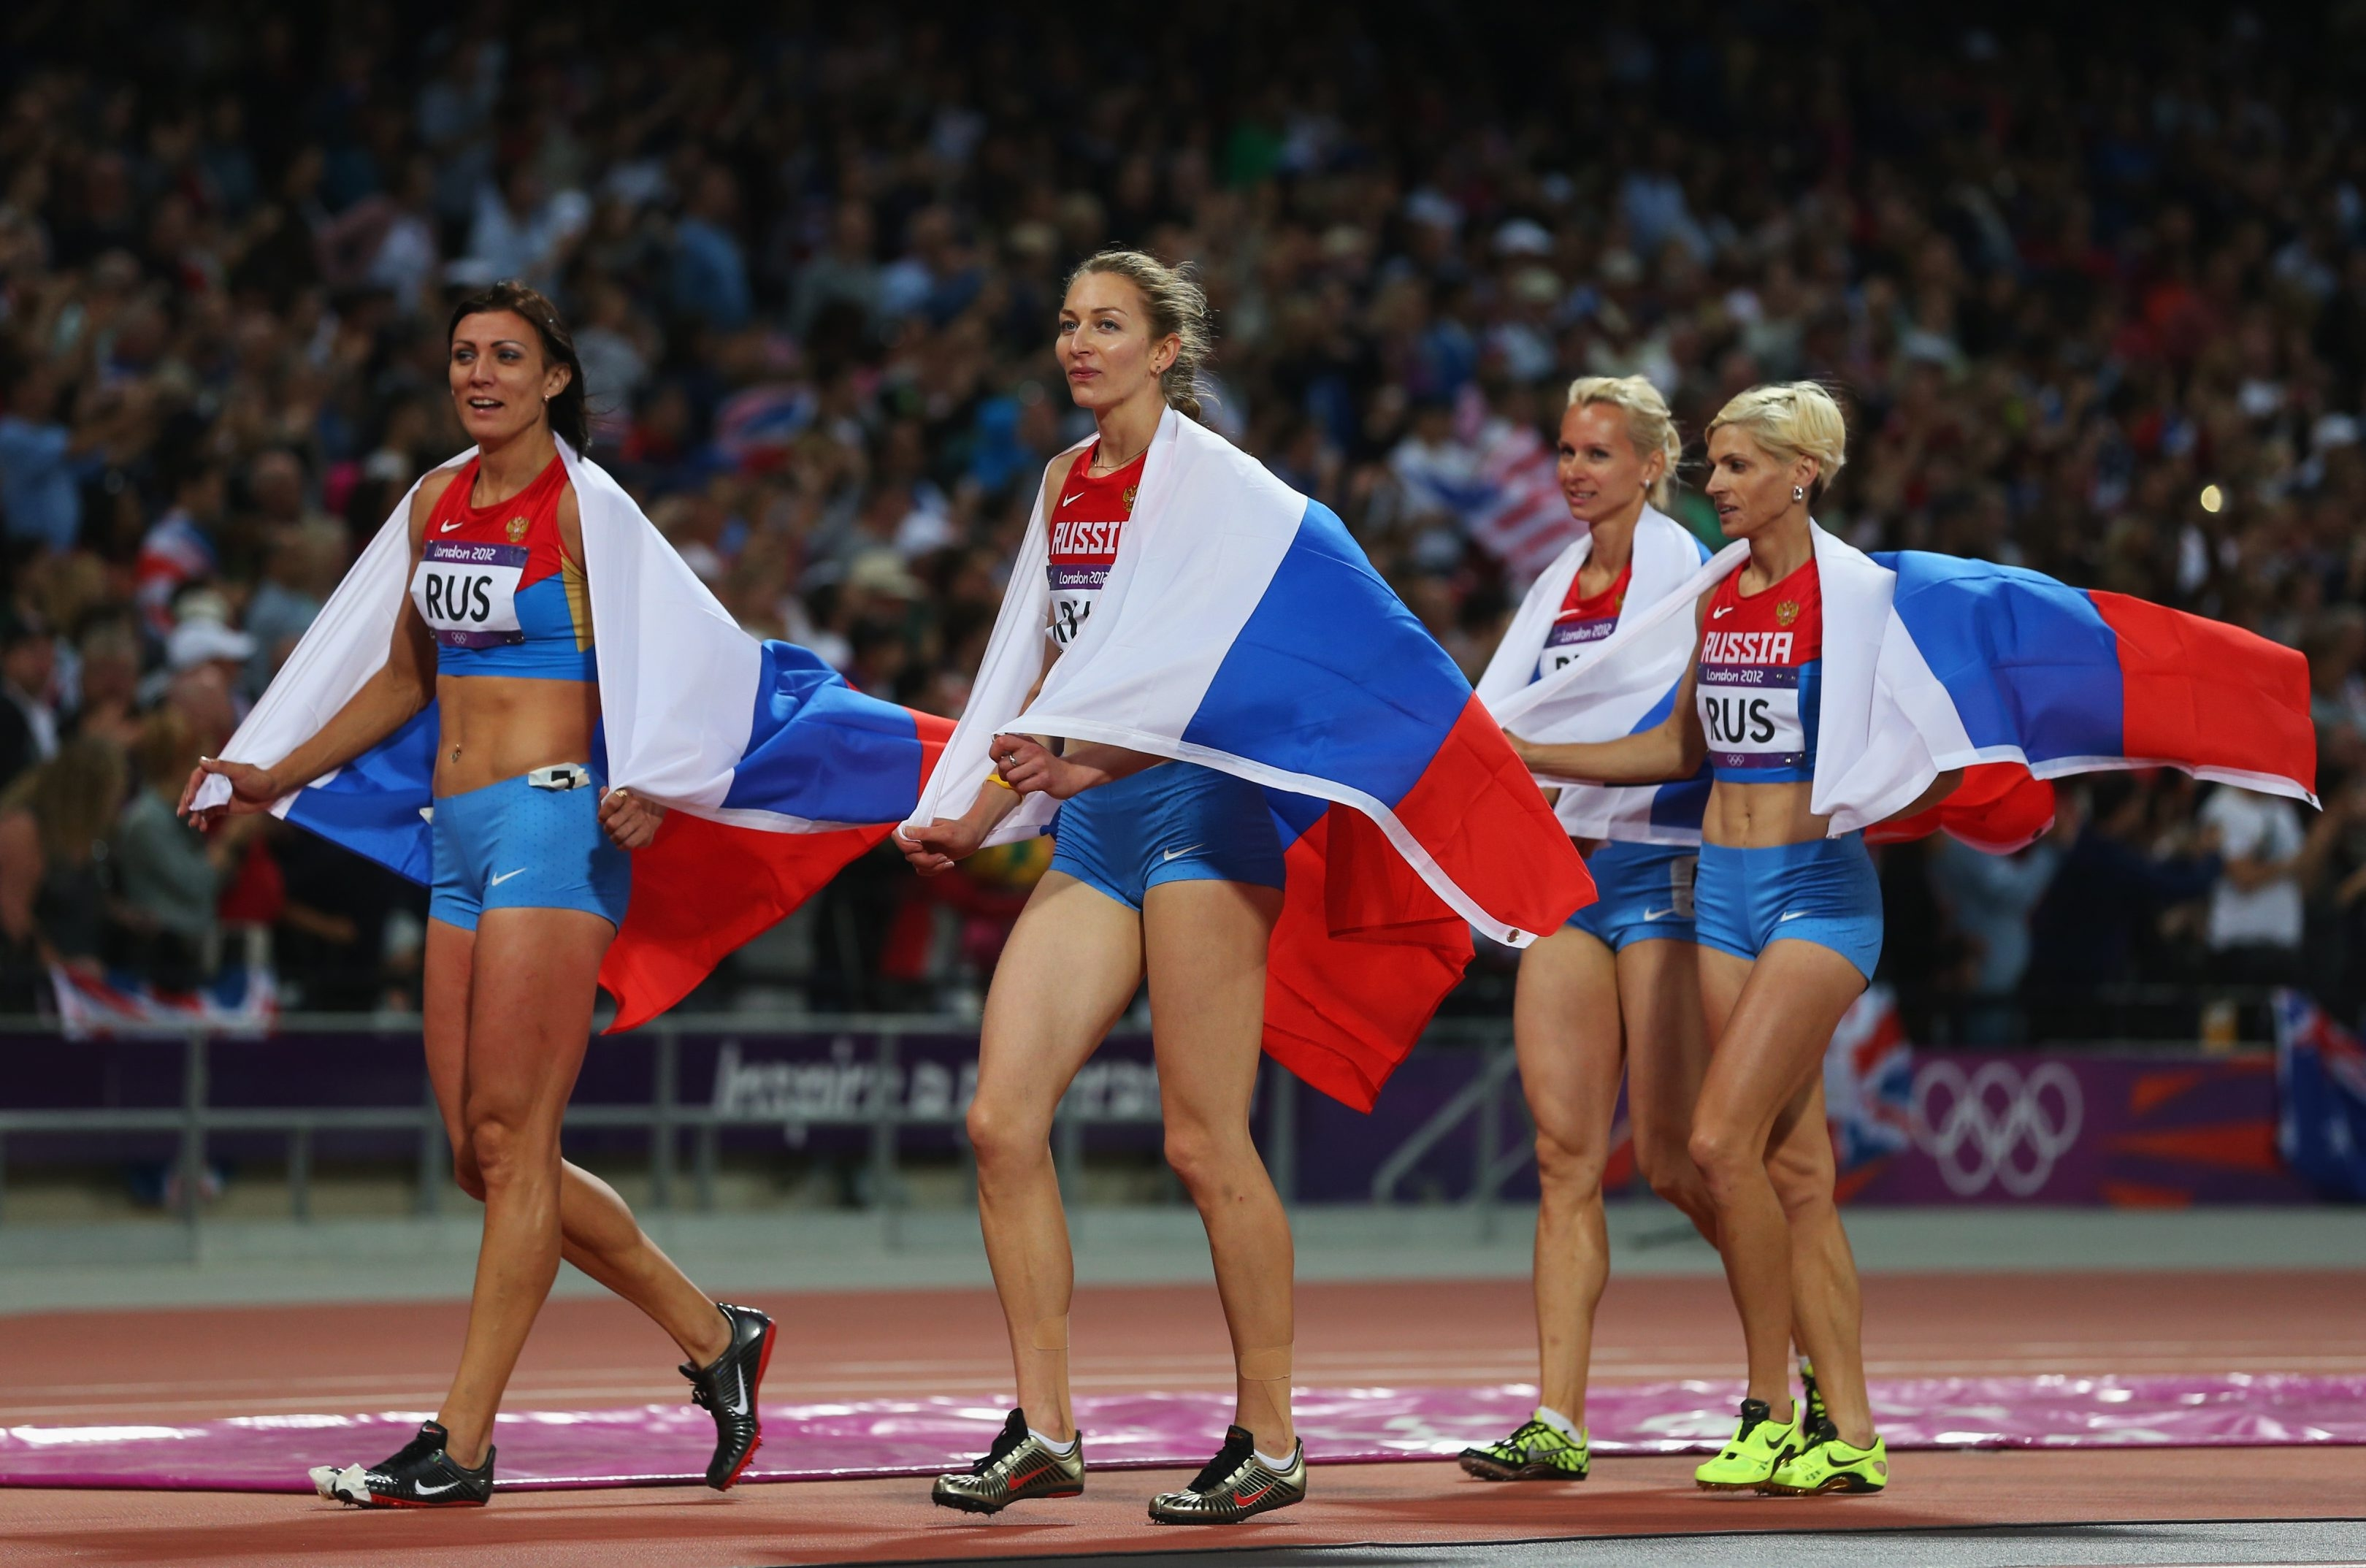 Natalya Antyukh, Tatyana Firova, Yulia Gushchina and Antonina Krivoshapka of Russia celebrate winning silver in the Women's 4x400 Relay Final at the London Olympics.